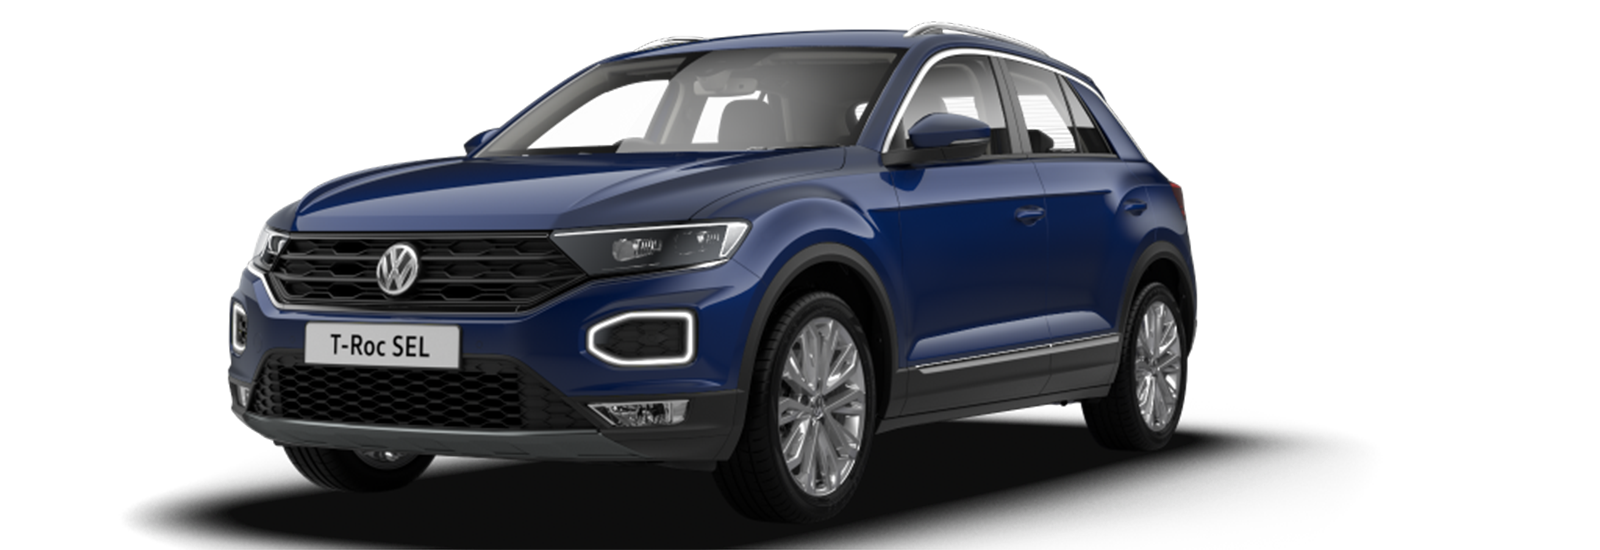 volkswagen suv prices 2018 dodge reviews Consumer Reports Best Used Cars Consumer Cartoon